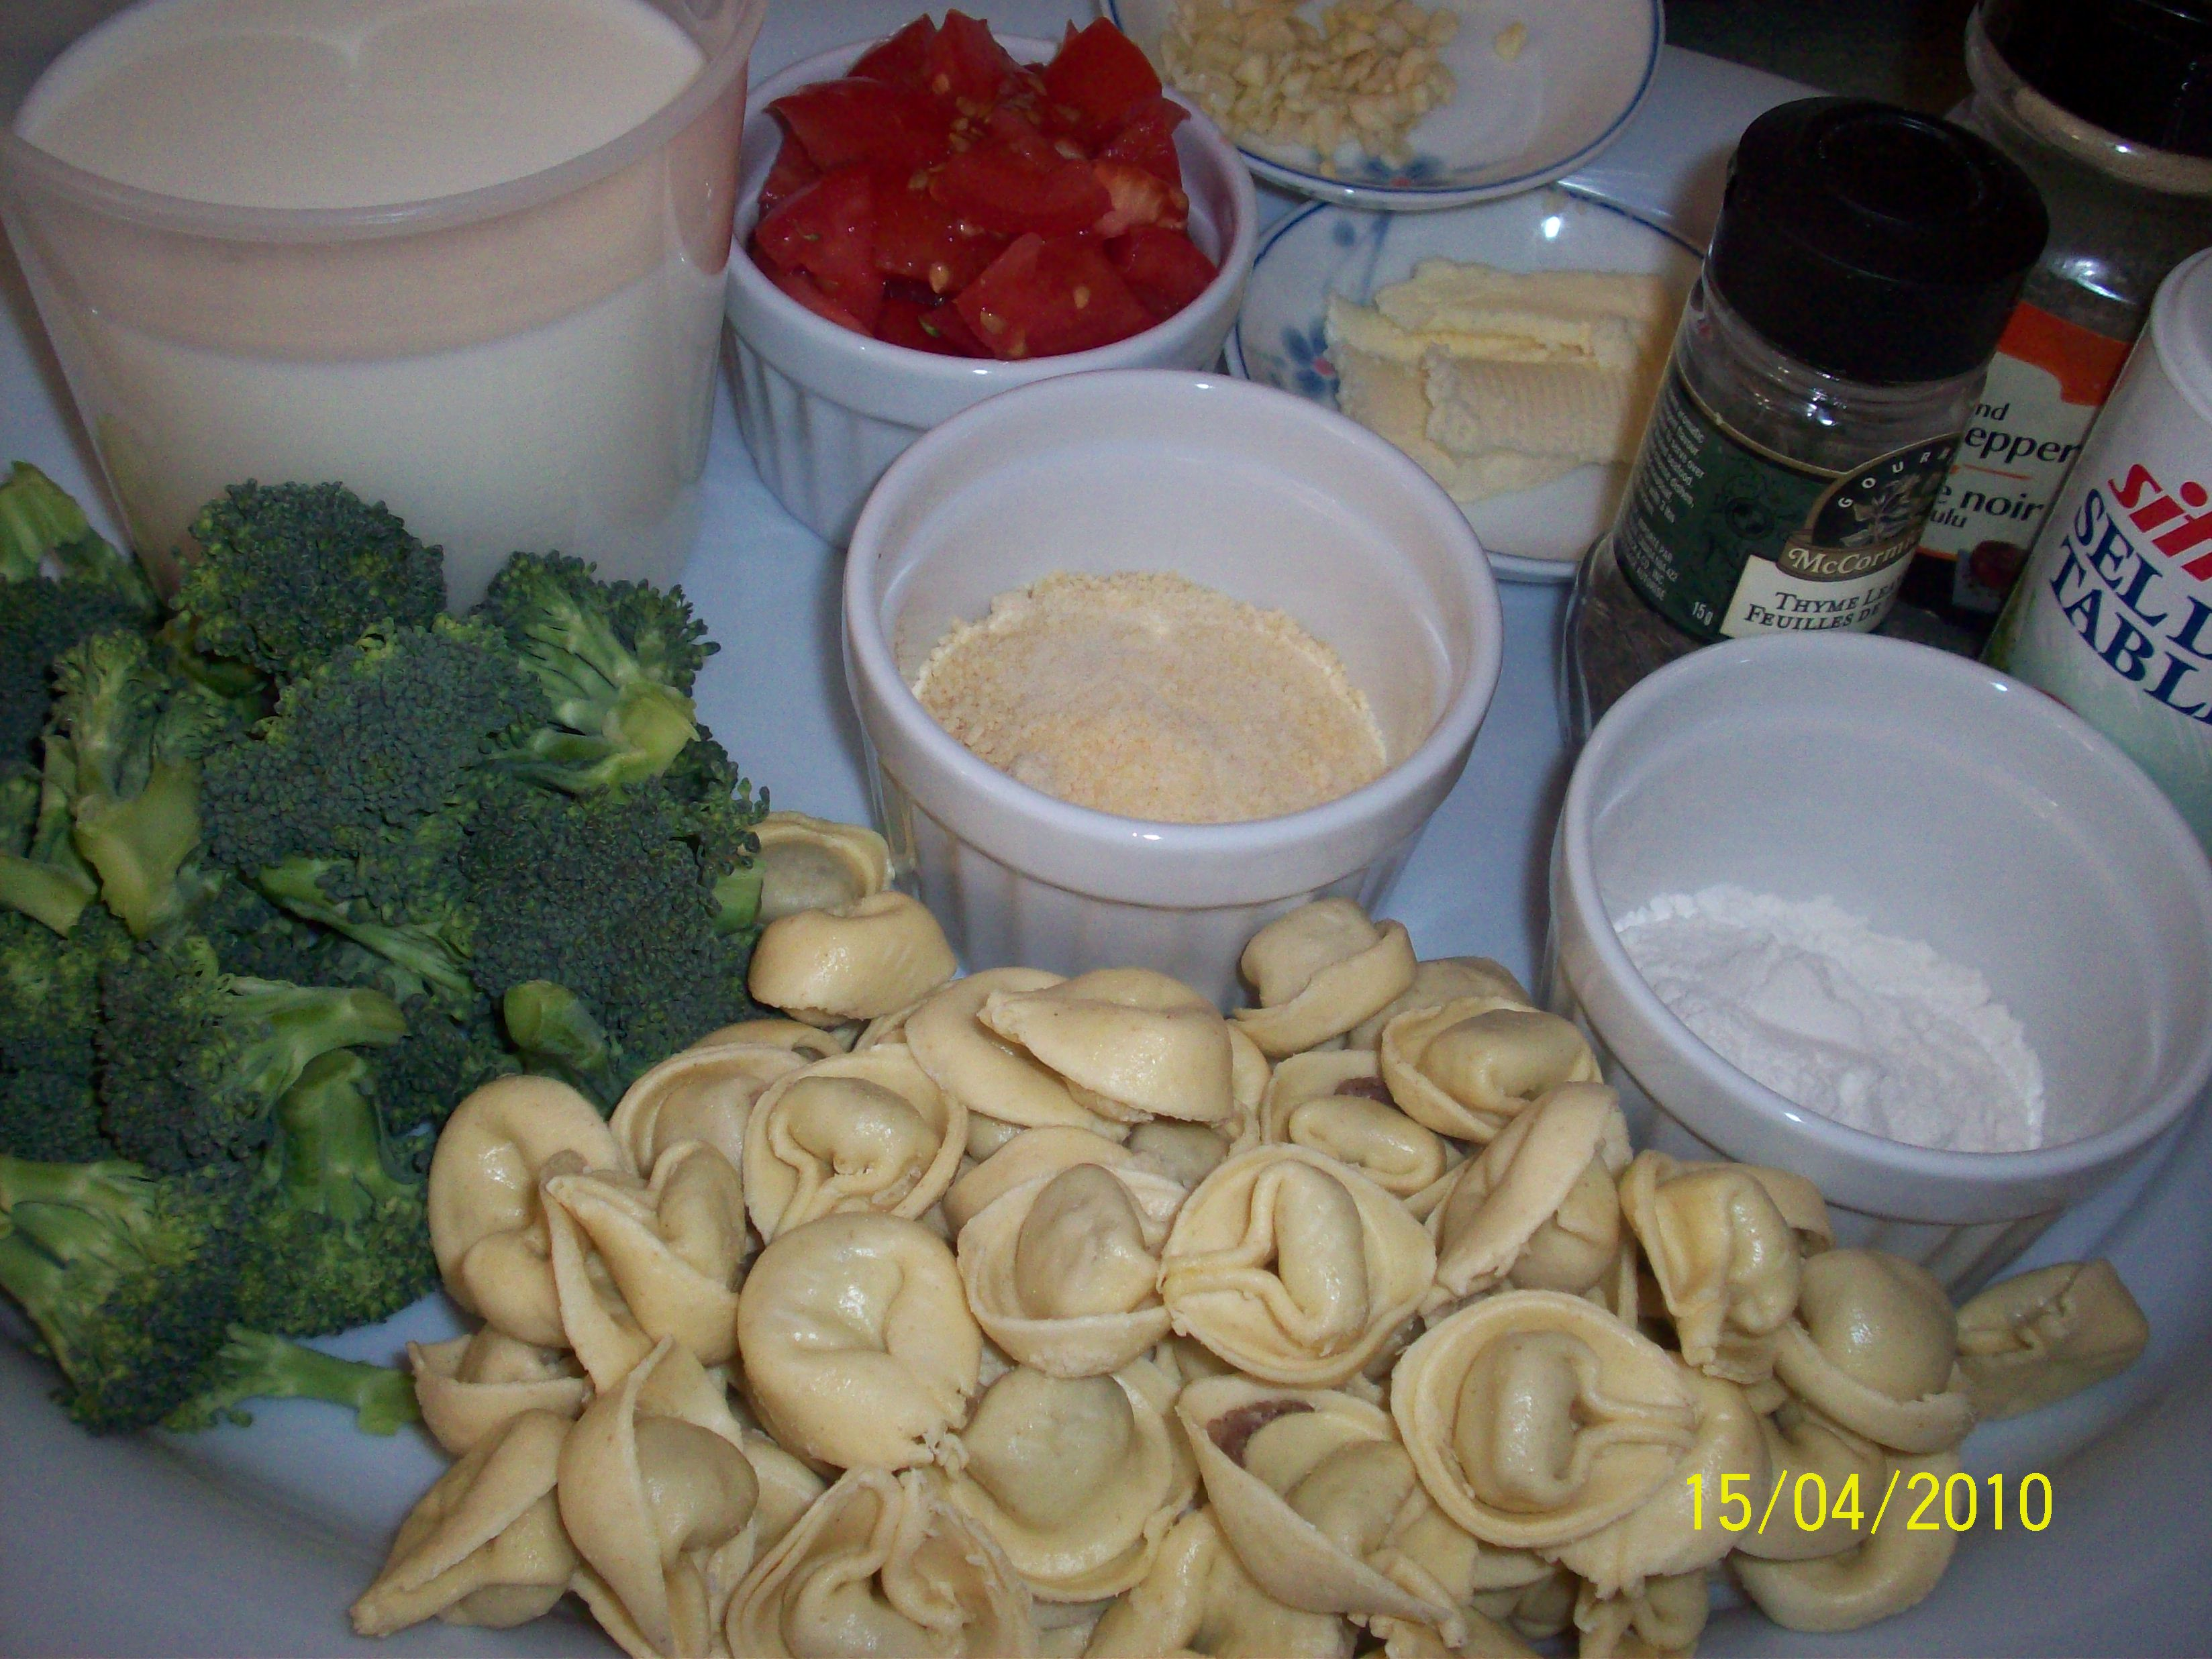 http://foodloader.net/cutie_2010-04-15_Tortellini_with_Roasted_Cauliflower_and_Tomatoes1.jpg